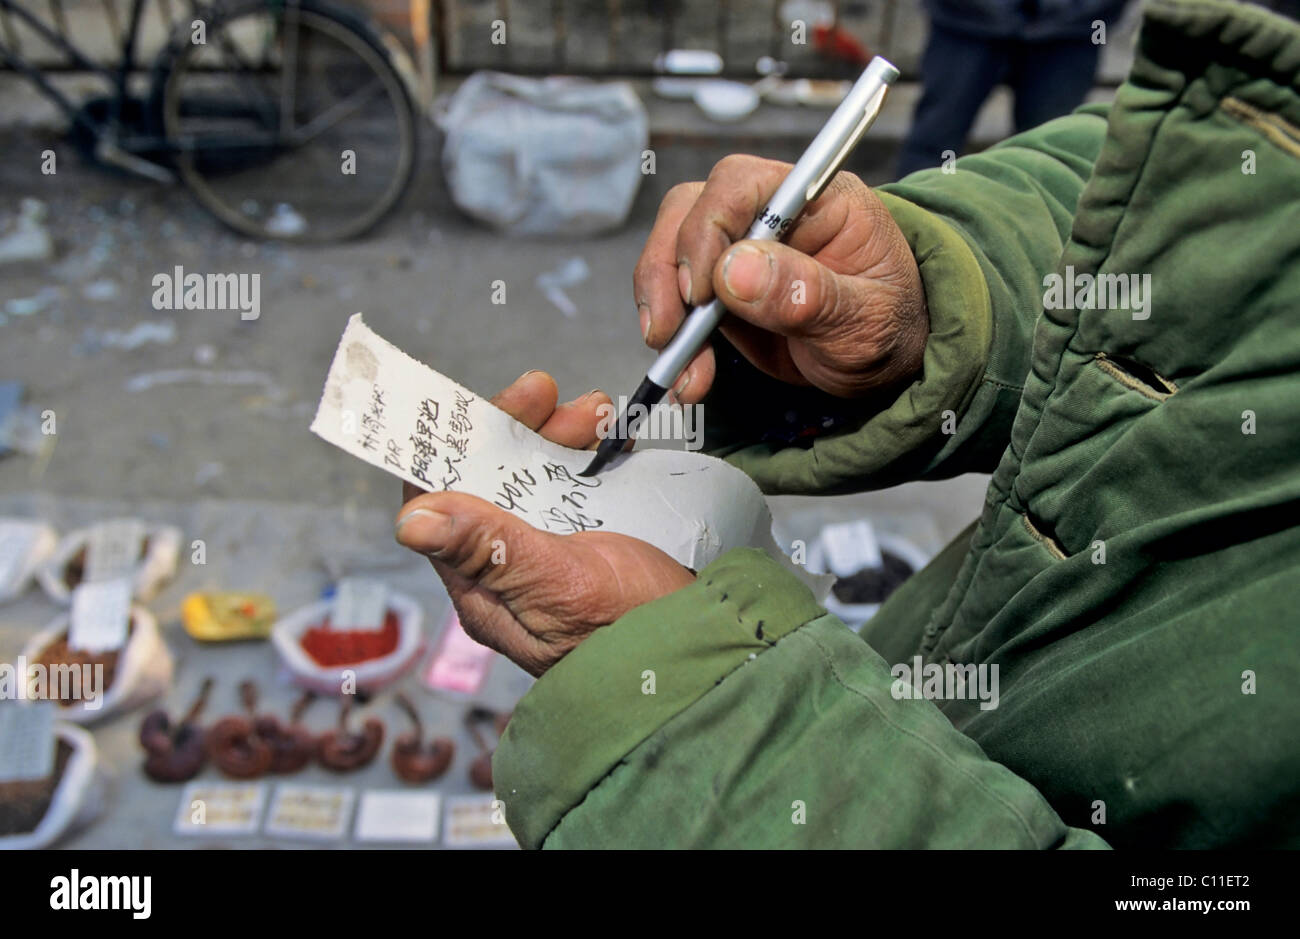 Man with a list, market in Beijing, China, Asia - Stock Image